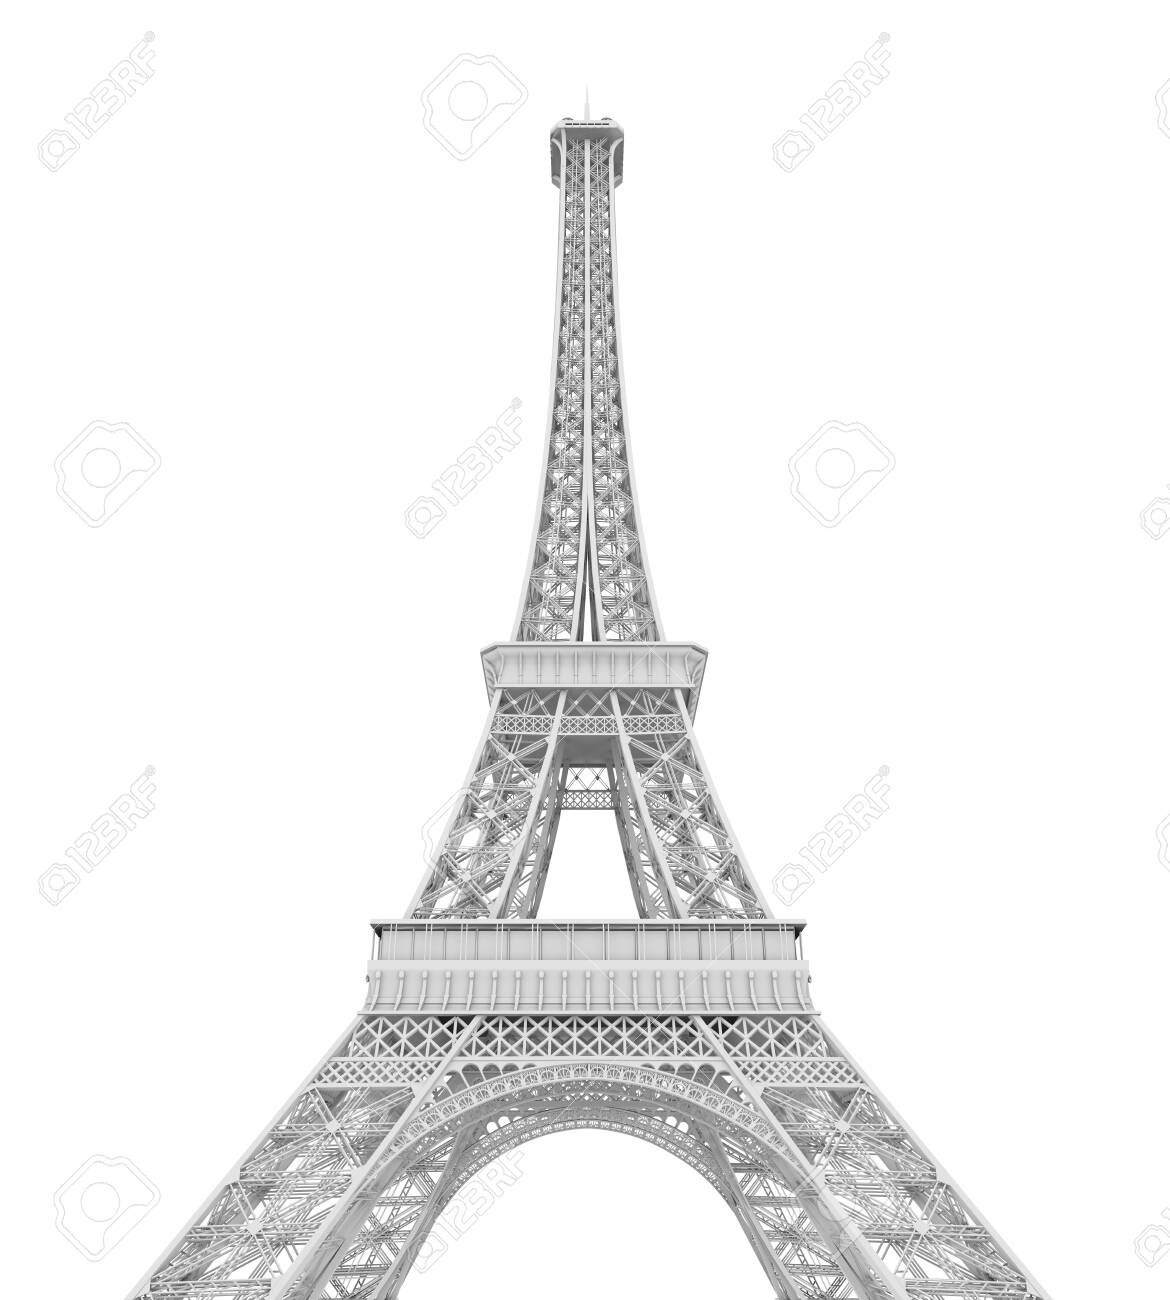 Eiffel Tower Isolated - 138265856